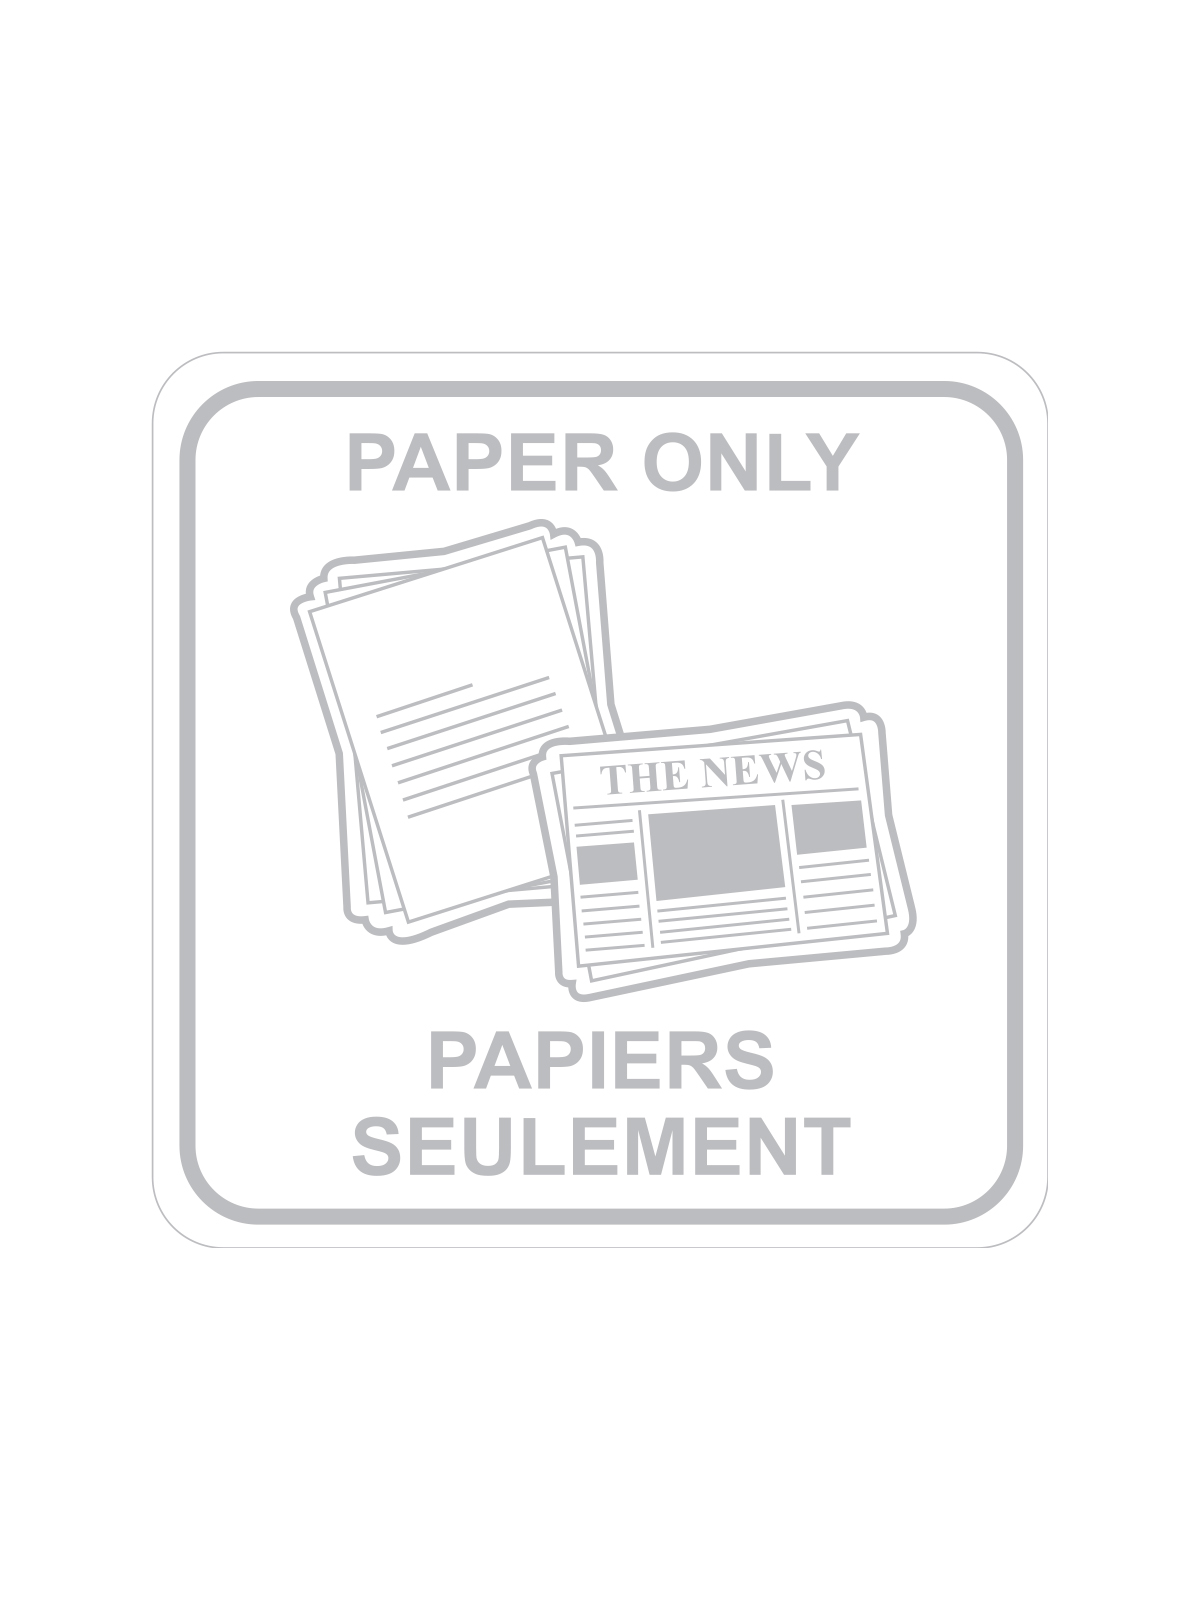 SQUARE LABEL PAPER ONLY - ENG/FRE